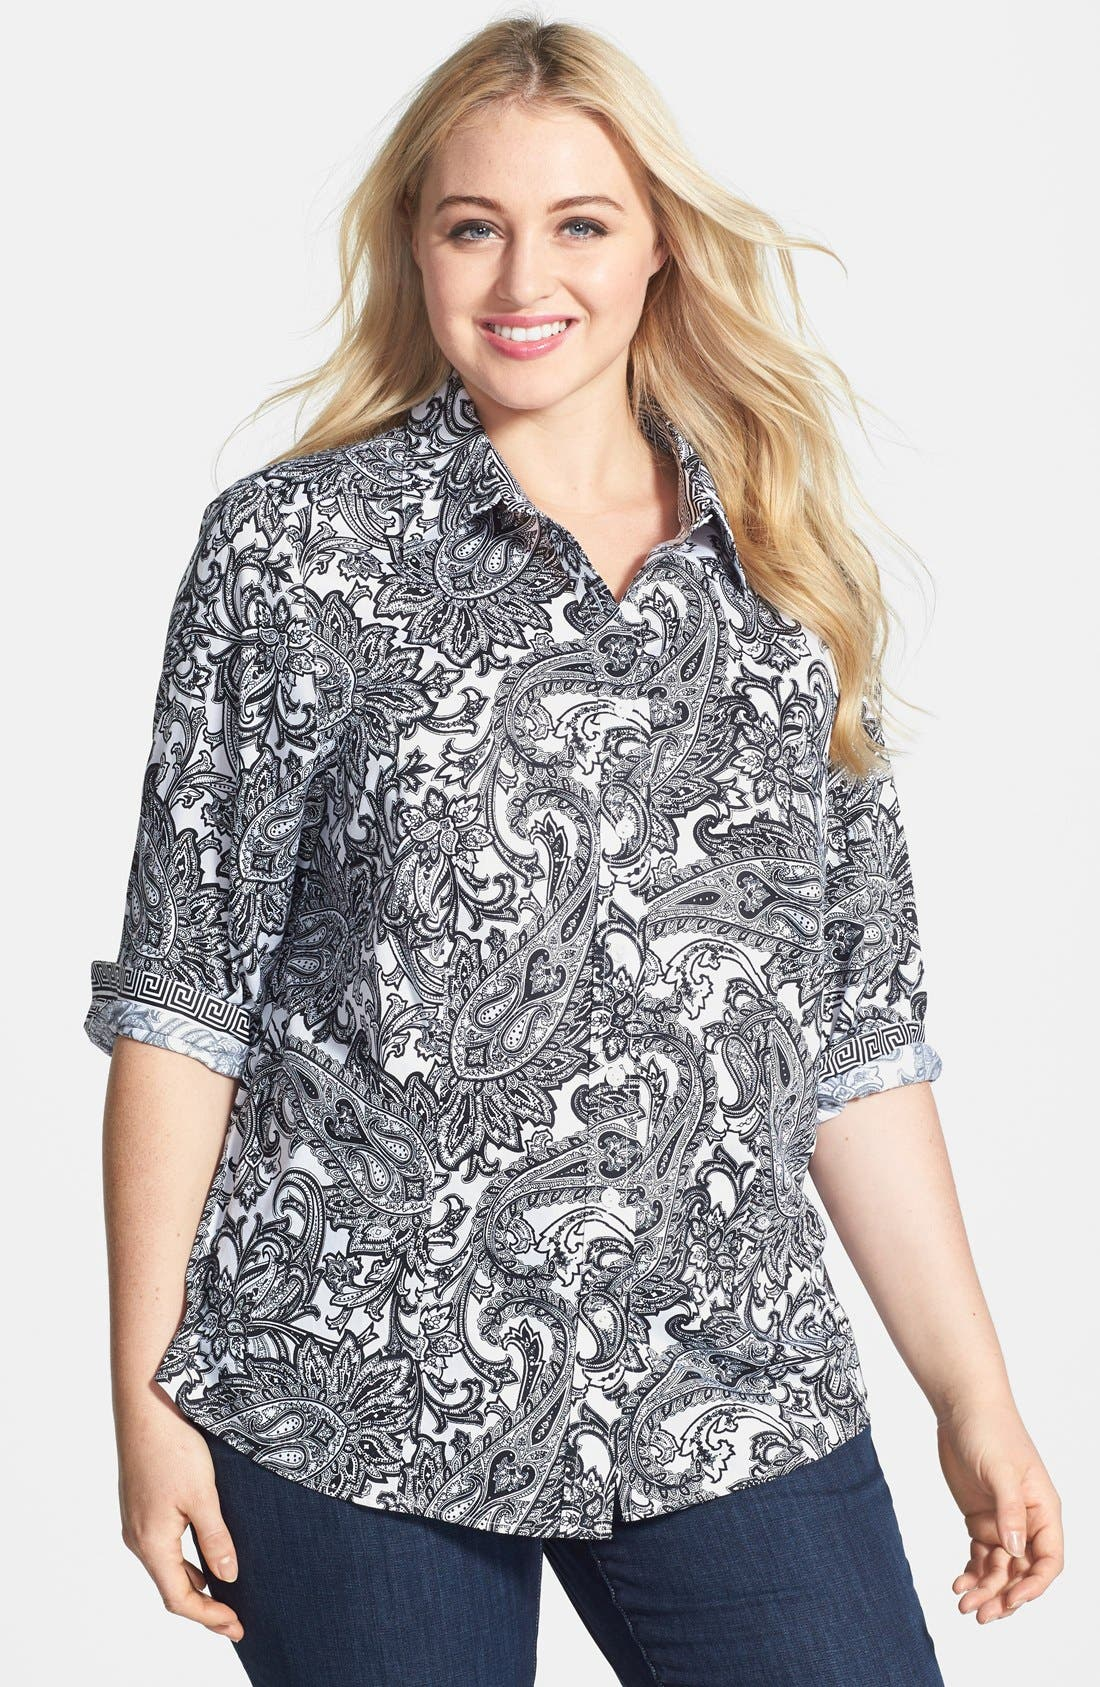 Alternate Image 1 Selected - Foxcroft 'Santorini' Paisley Print Wrinkle Free Cotton Shirt (Plus Size)